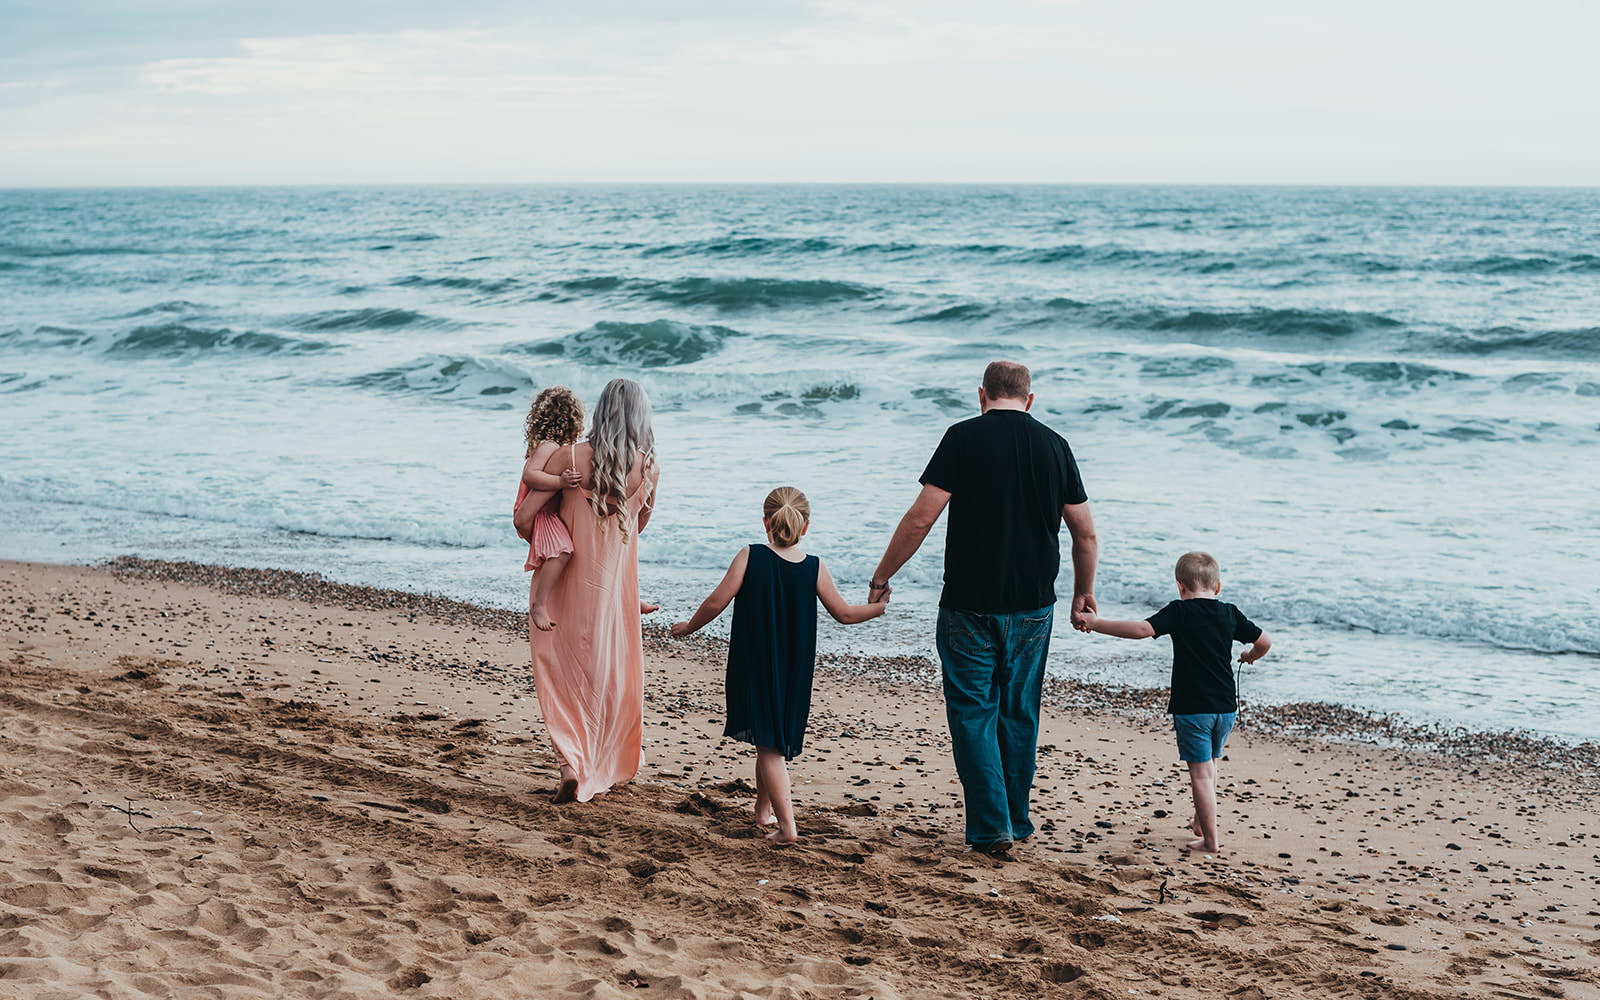 Family holding hands while walking along the water edge at the beach.